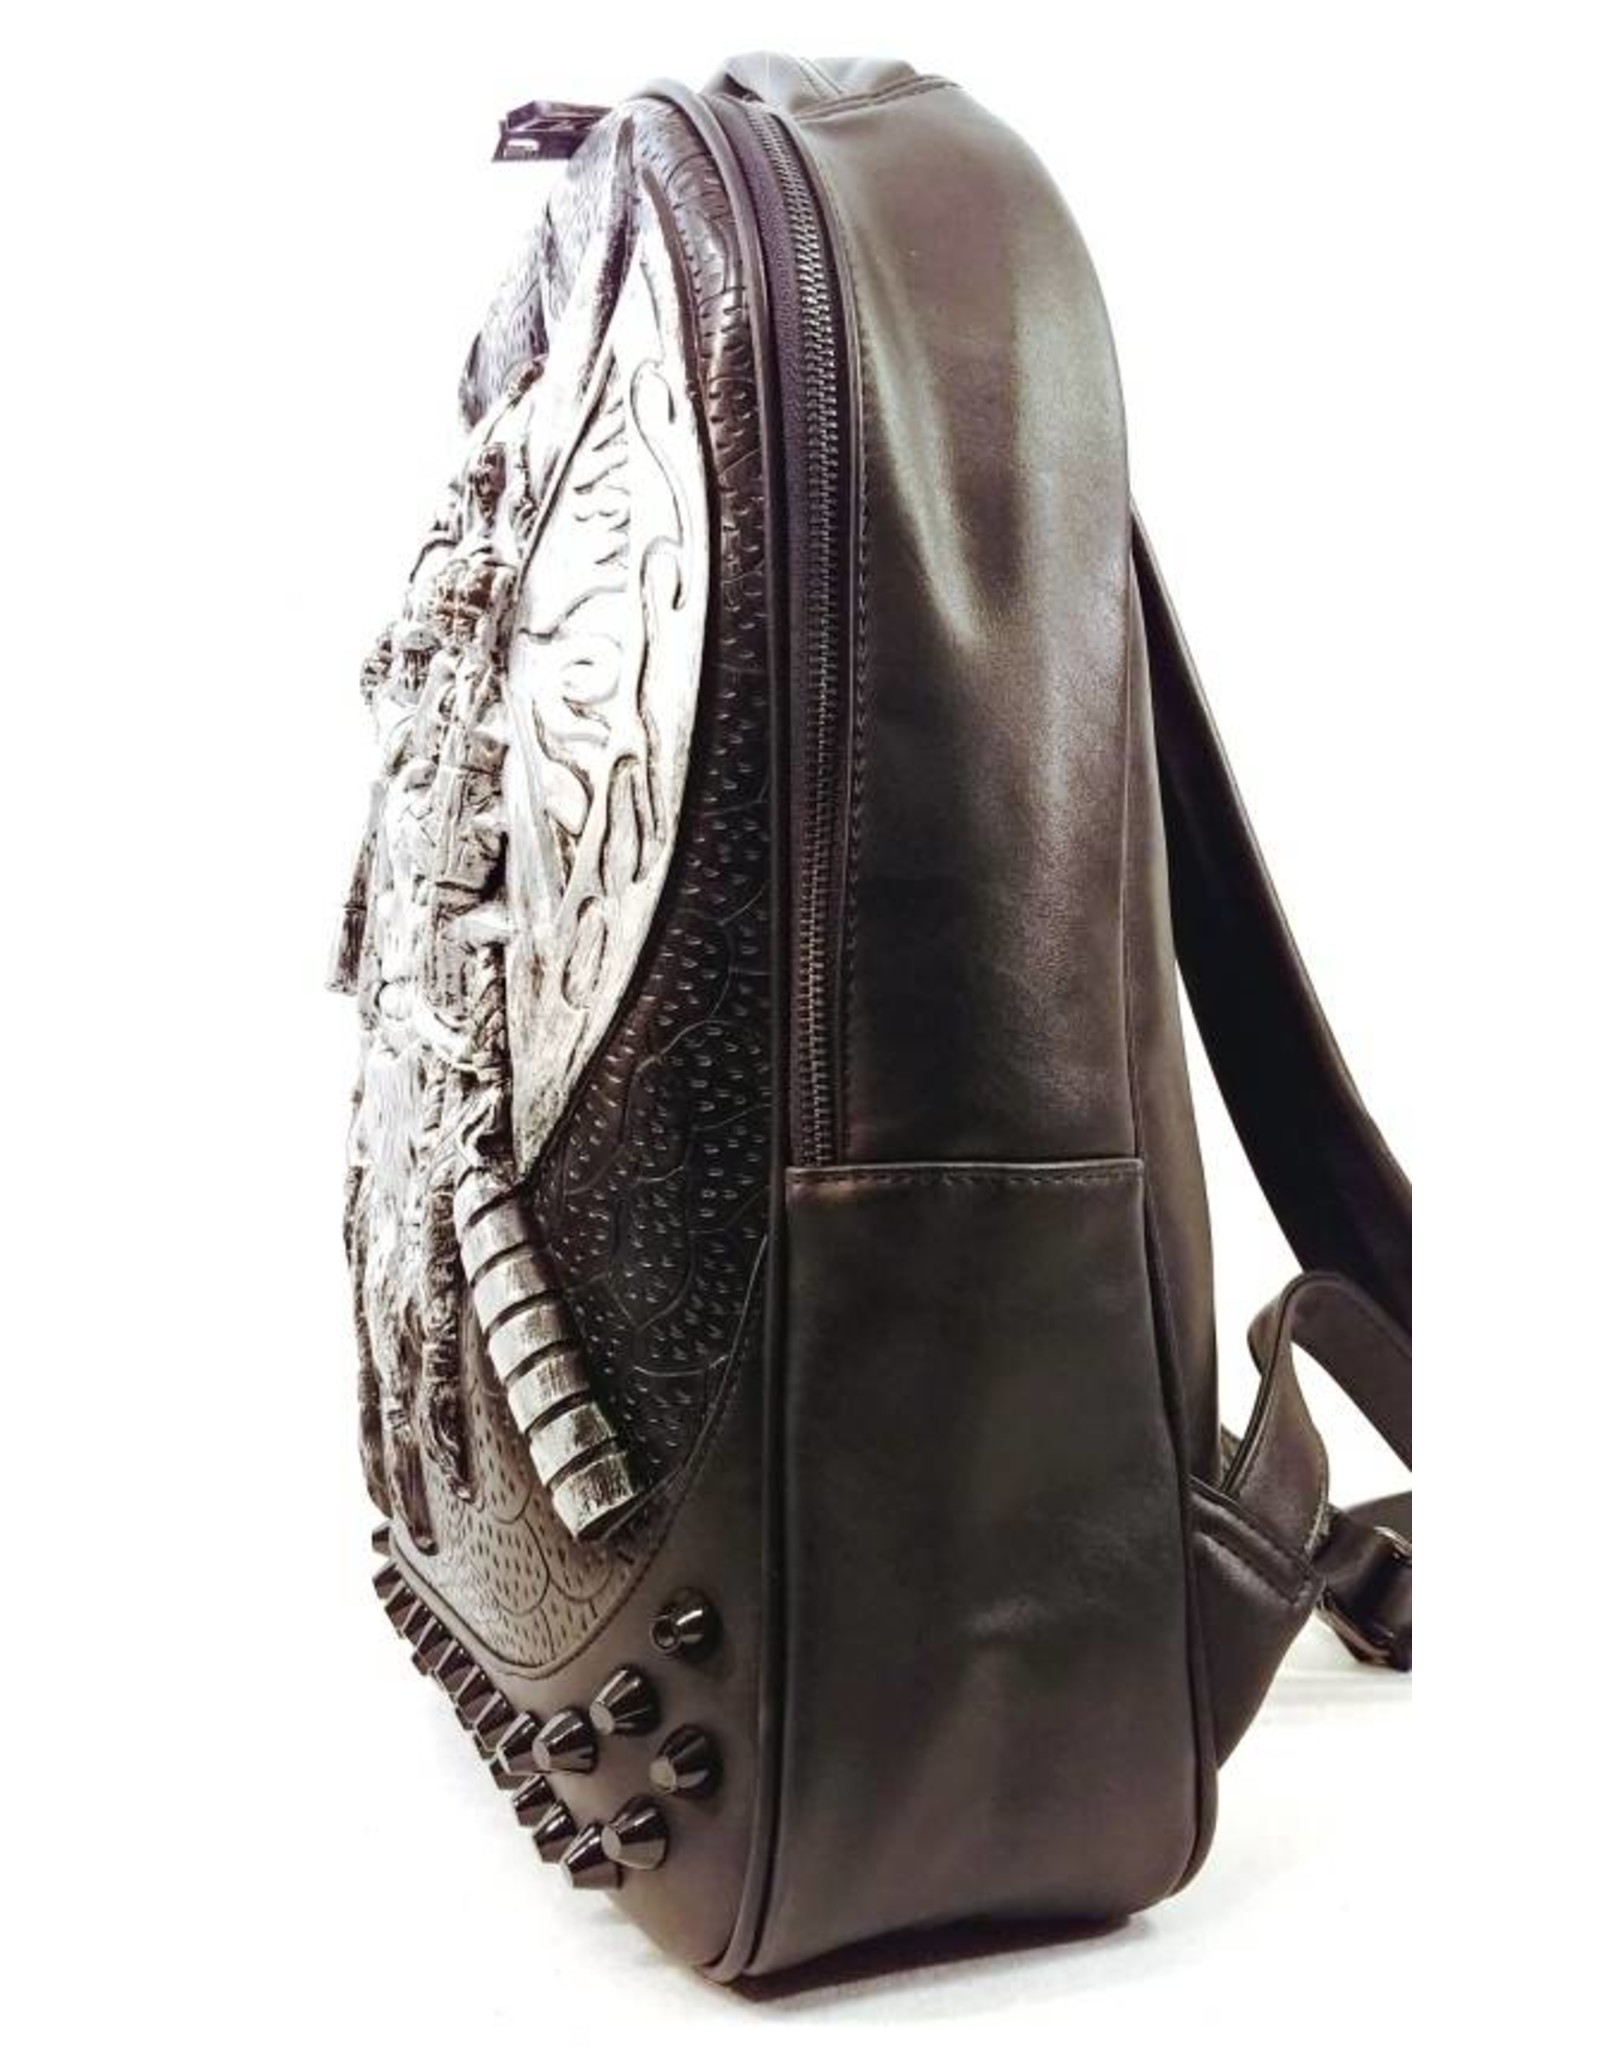 Dark Desire Gothic bags Steampunk bags - Gothic 3D backpack Viking silver